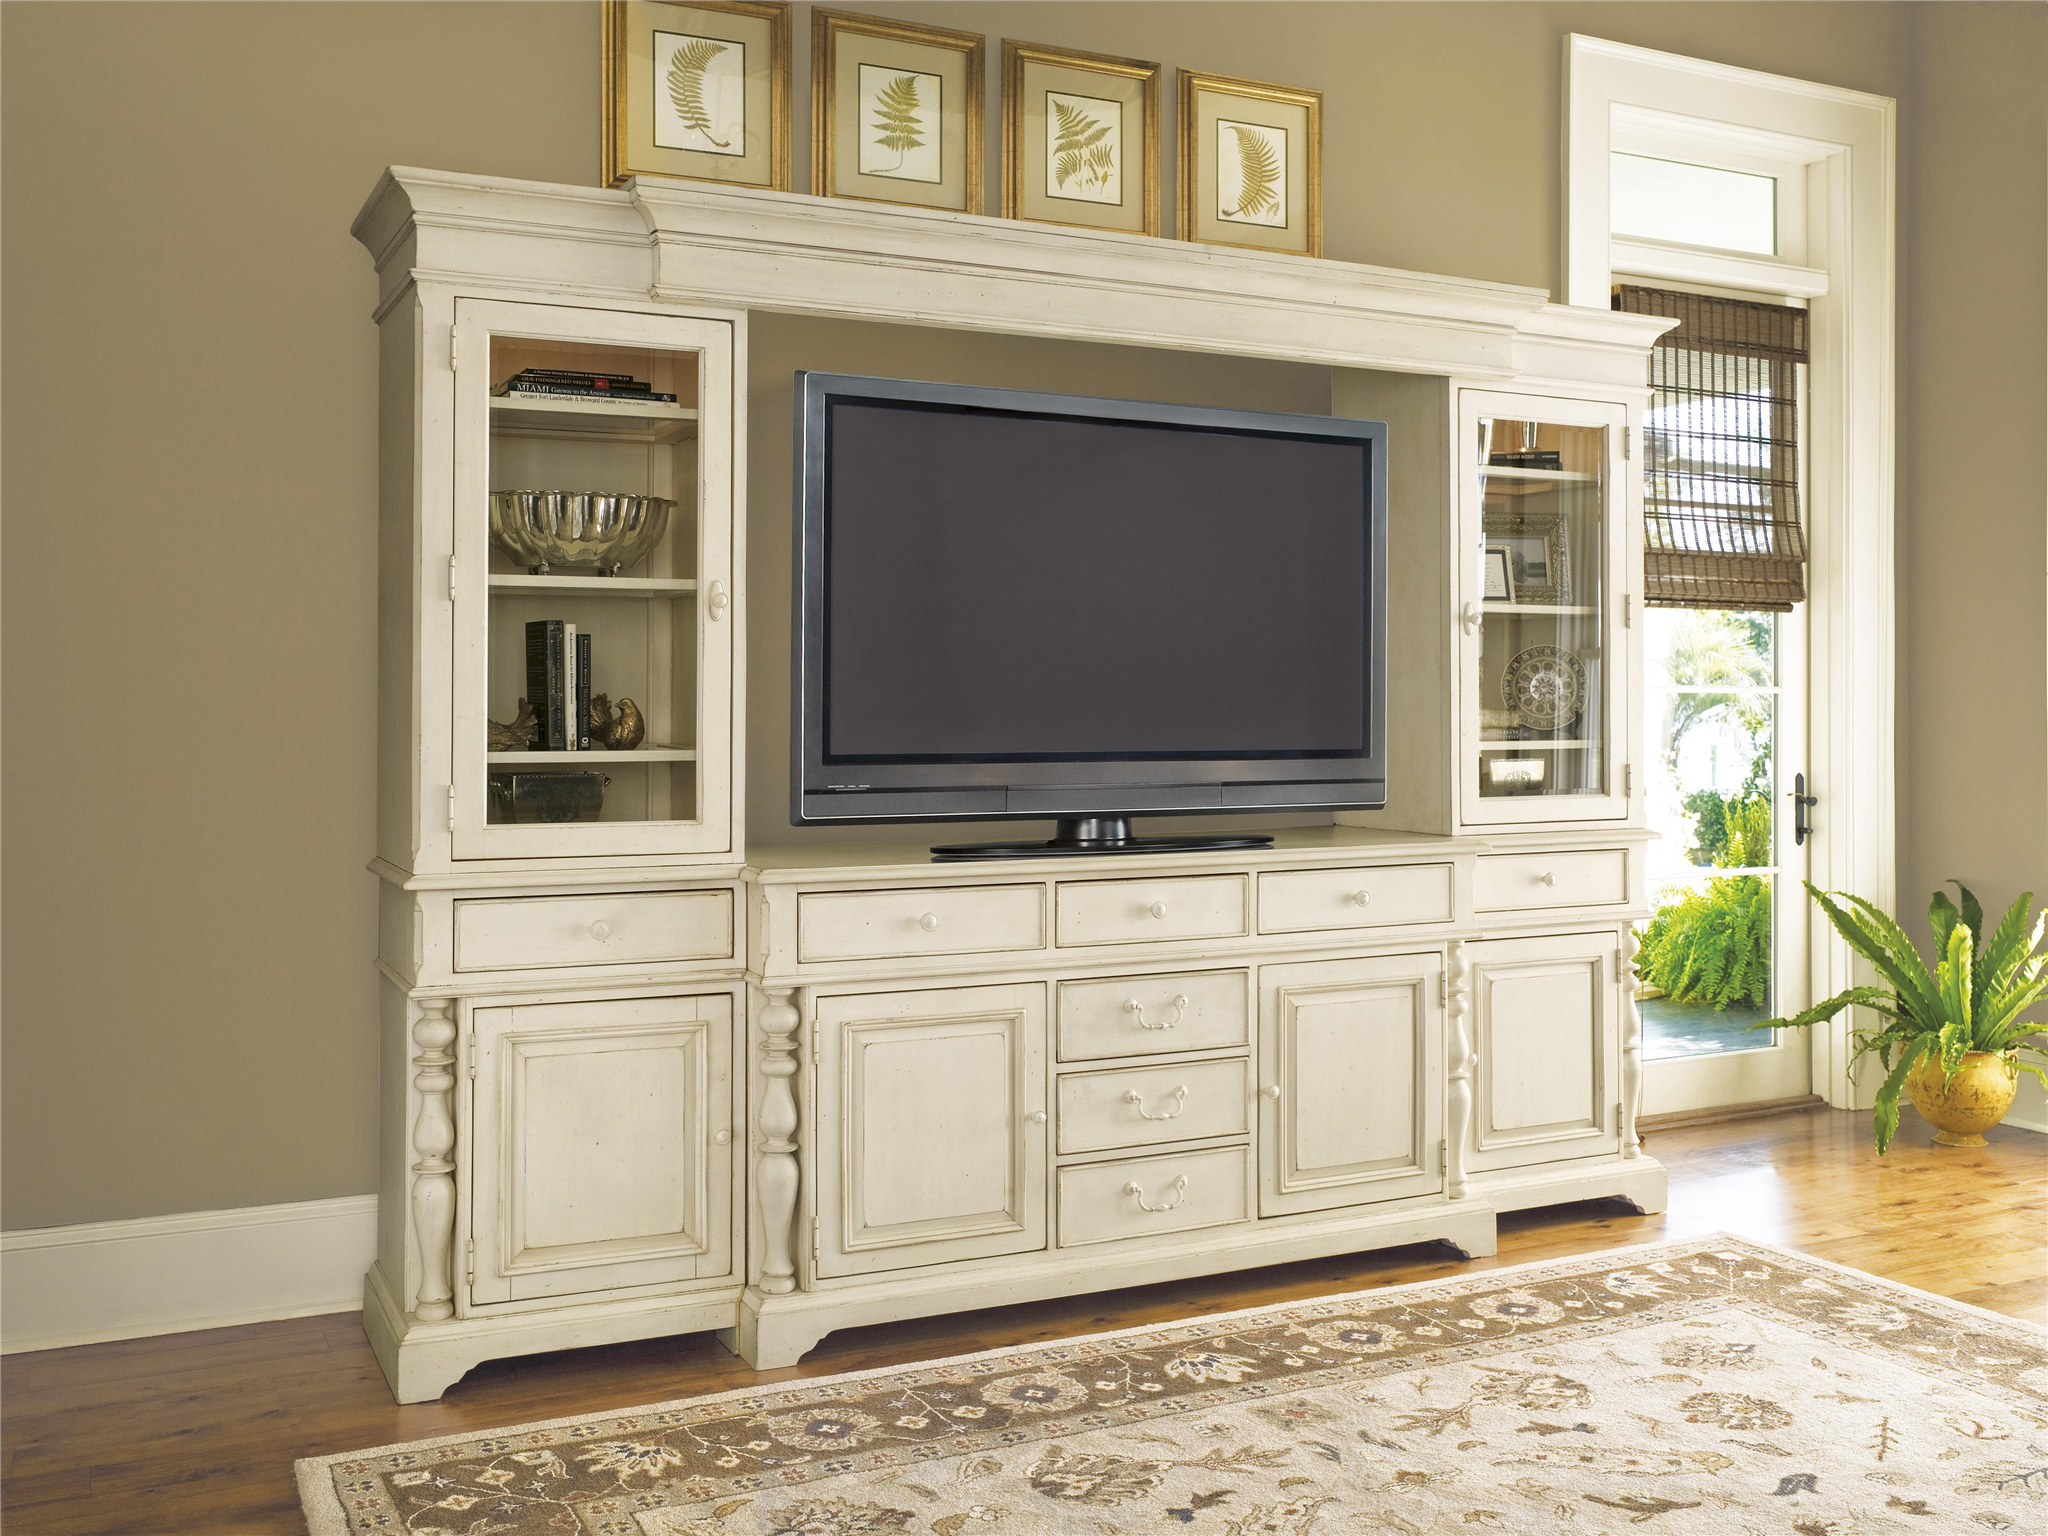 Vintage Entertainment System Furniture With A Lot Of Drawers And Glass Door  Plus Flat Tv And